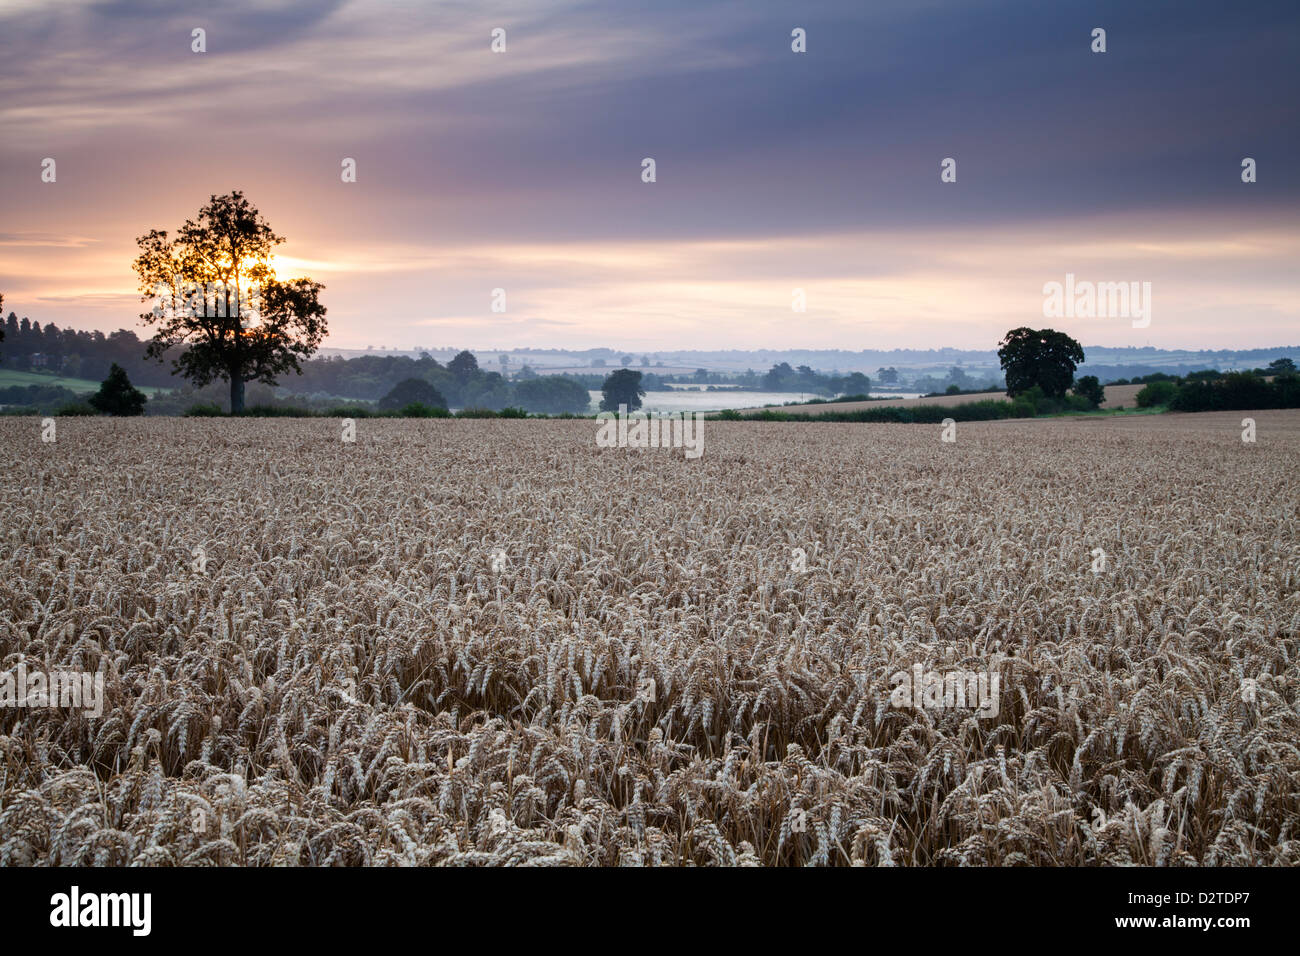 Beside a field of ripened Wheat at dawn with mist rising in the shallow valley beyond near Holdenby in Northamptonshire, - Stock Image